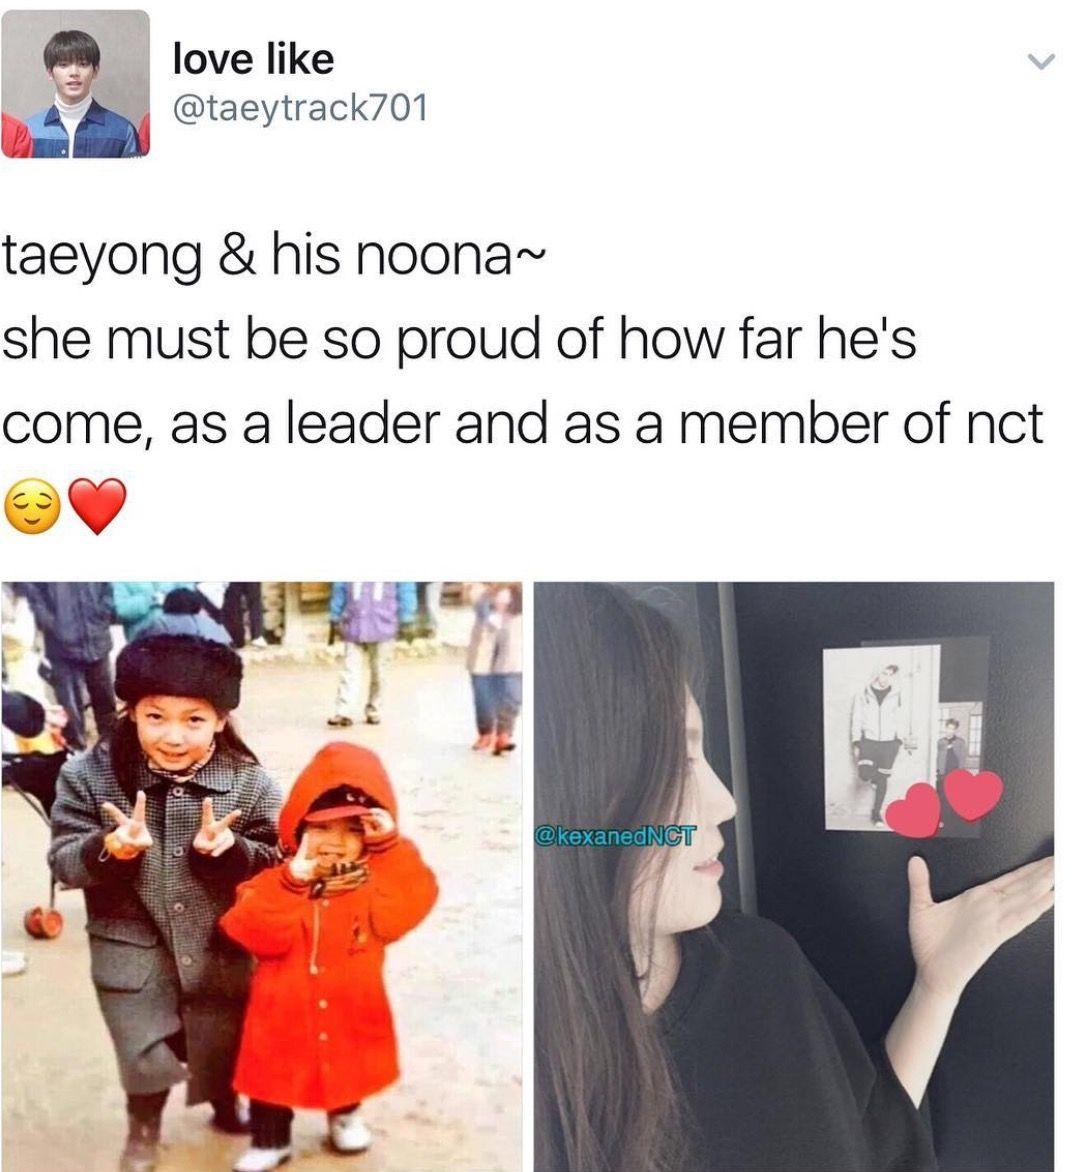 Pin by Lydia on NCT | NCT, Nct 127, Nct taeyong